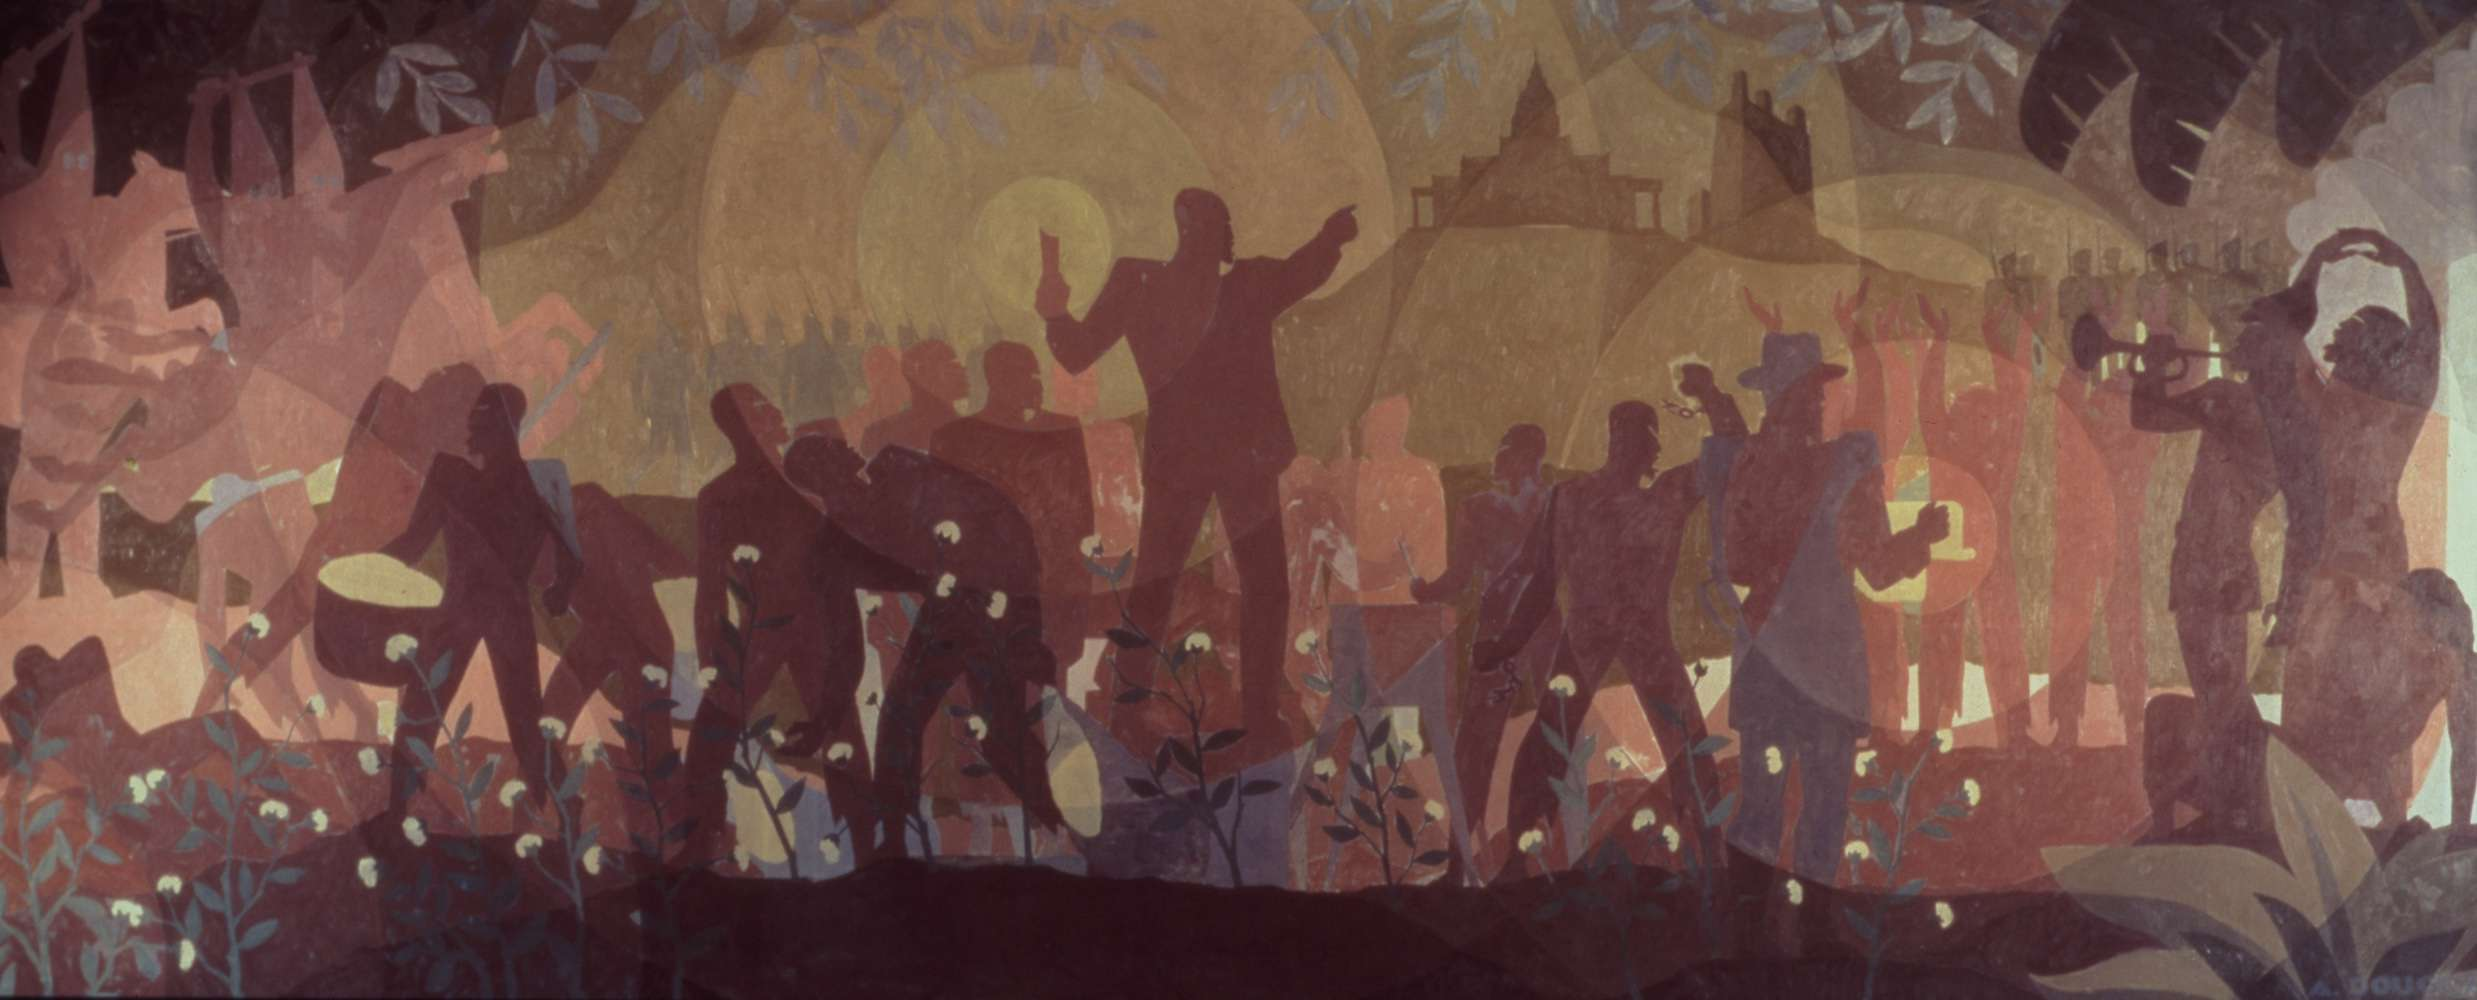 from slavery to reconstruction aaron douglas